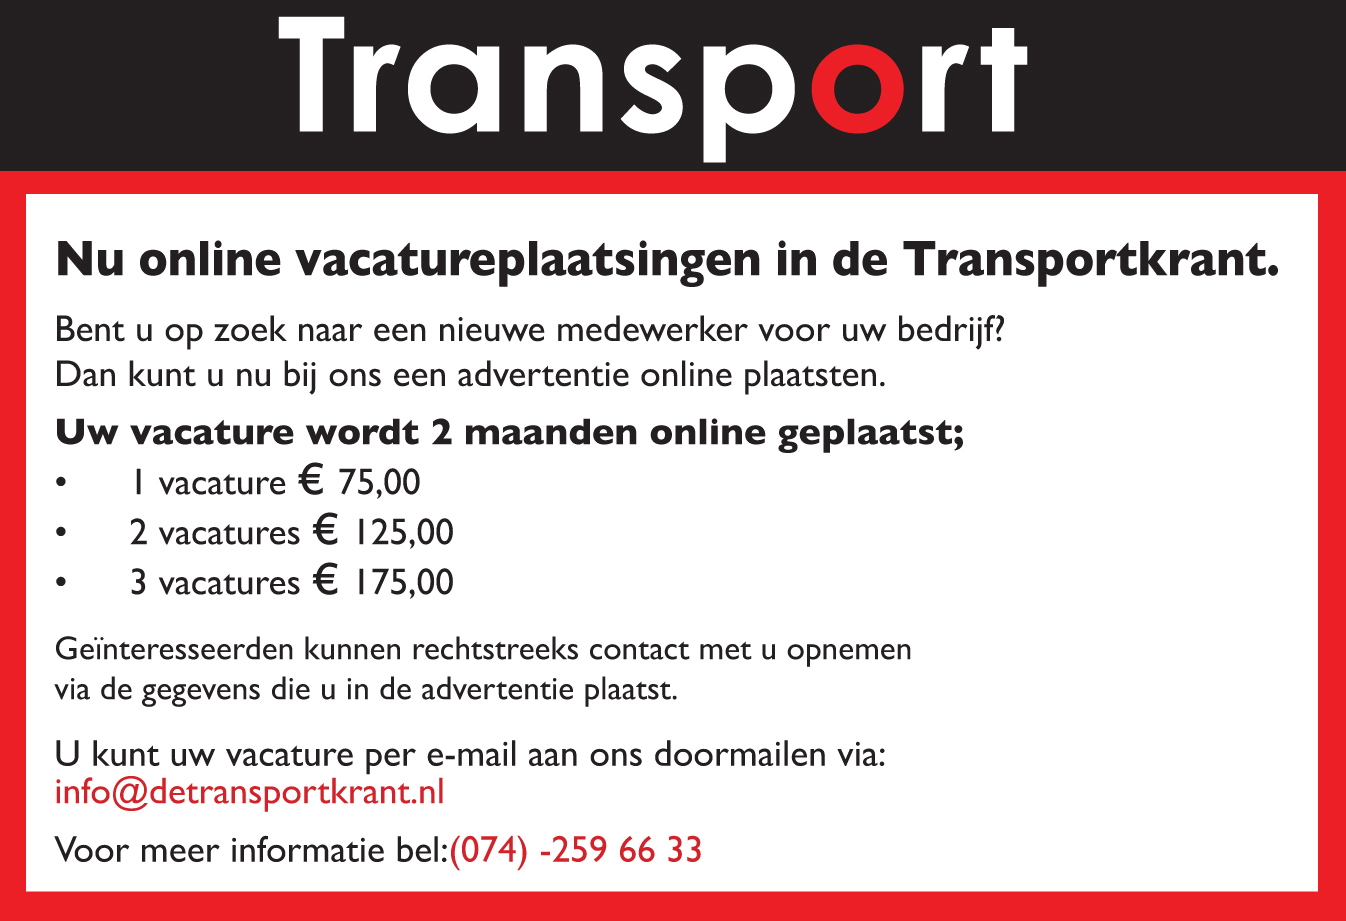 https://www.detransportkrant.nl